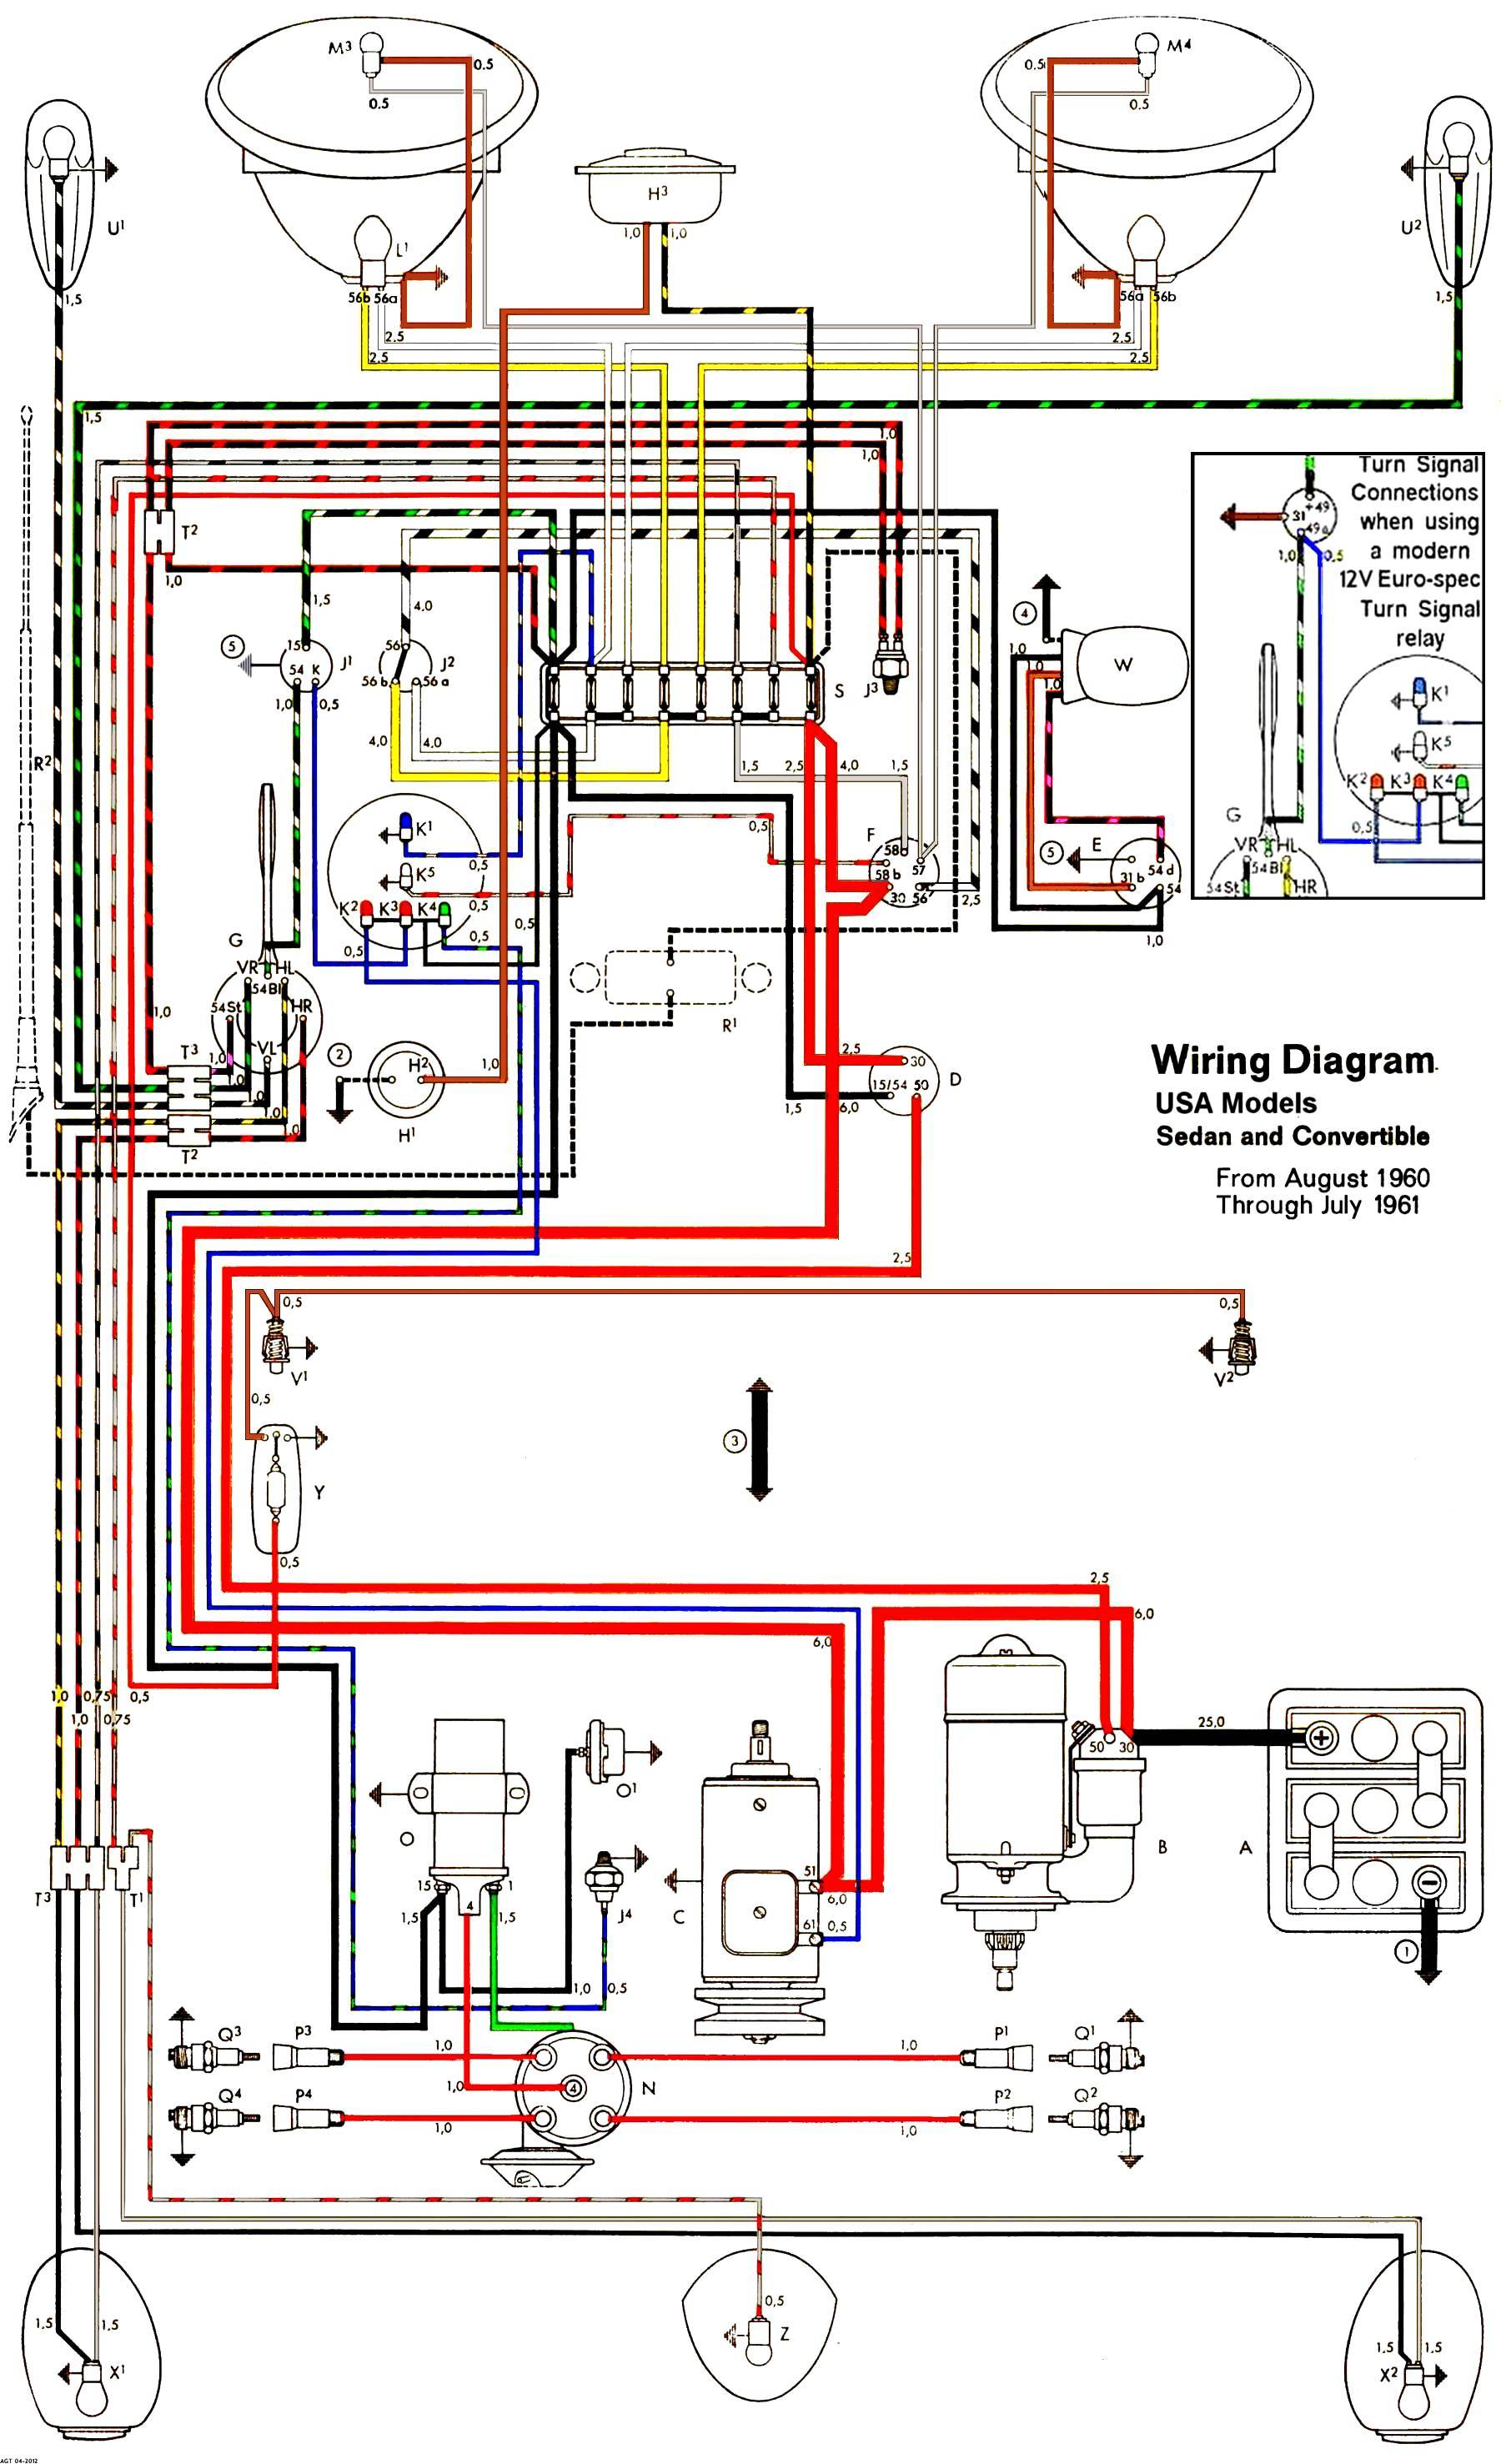 Vw Bug Generator Wiring Diagram Wire Data Schema Addacircuit39 Mini Blade Fuse Holder With 5 And 10 Amp Fuses P Nos 72 Schematic Diagrams U2022 Rh Detox Design Co 1972 Beetle